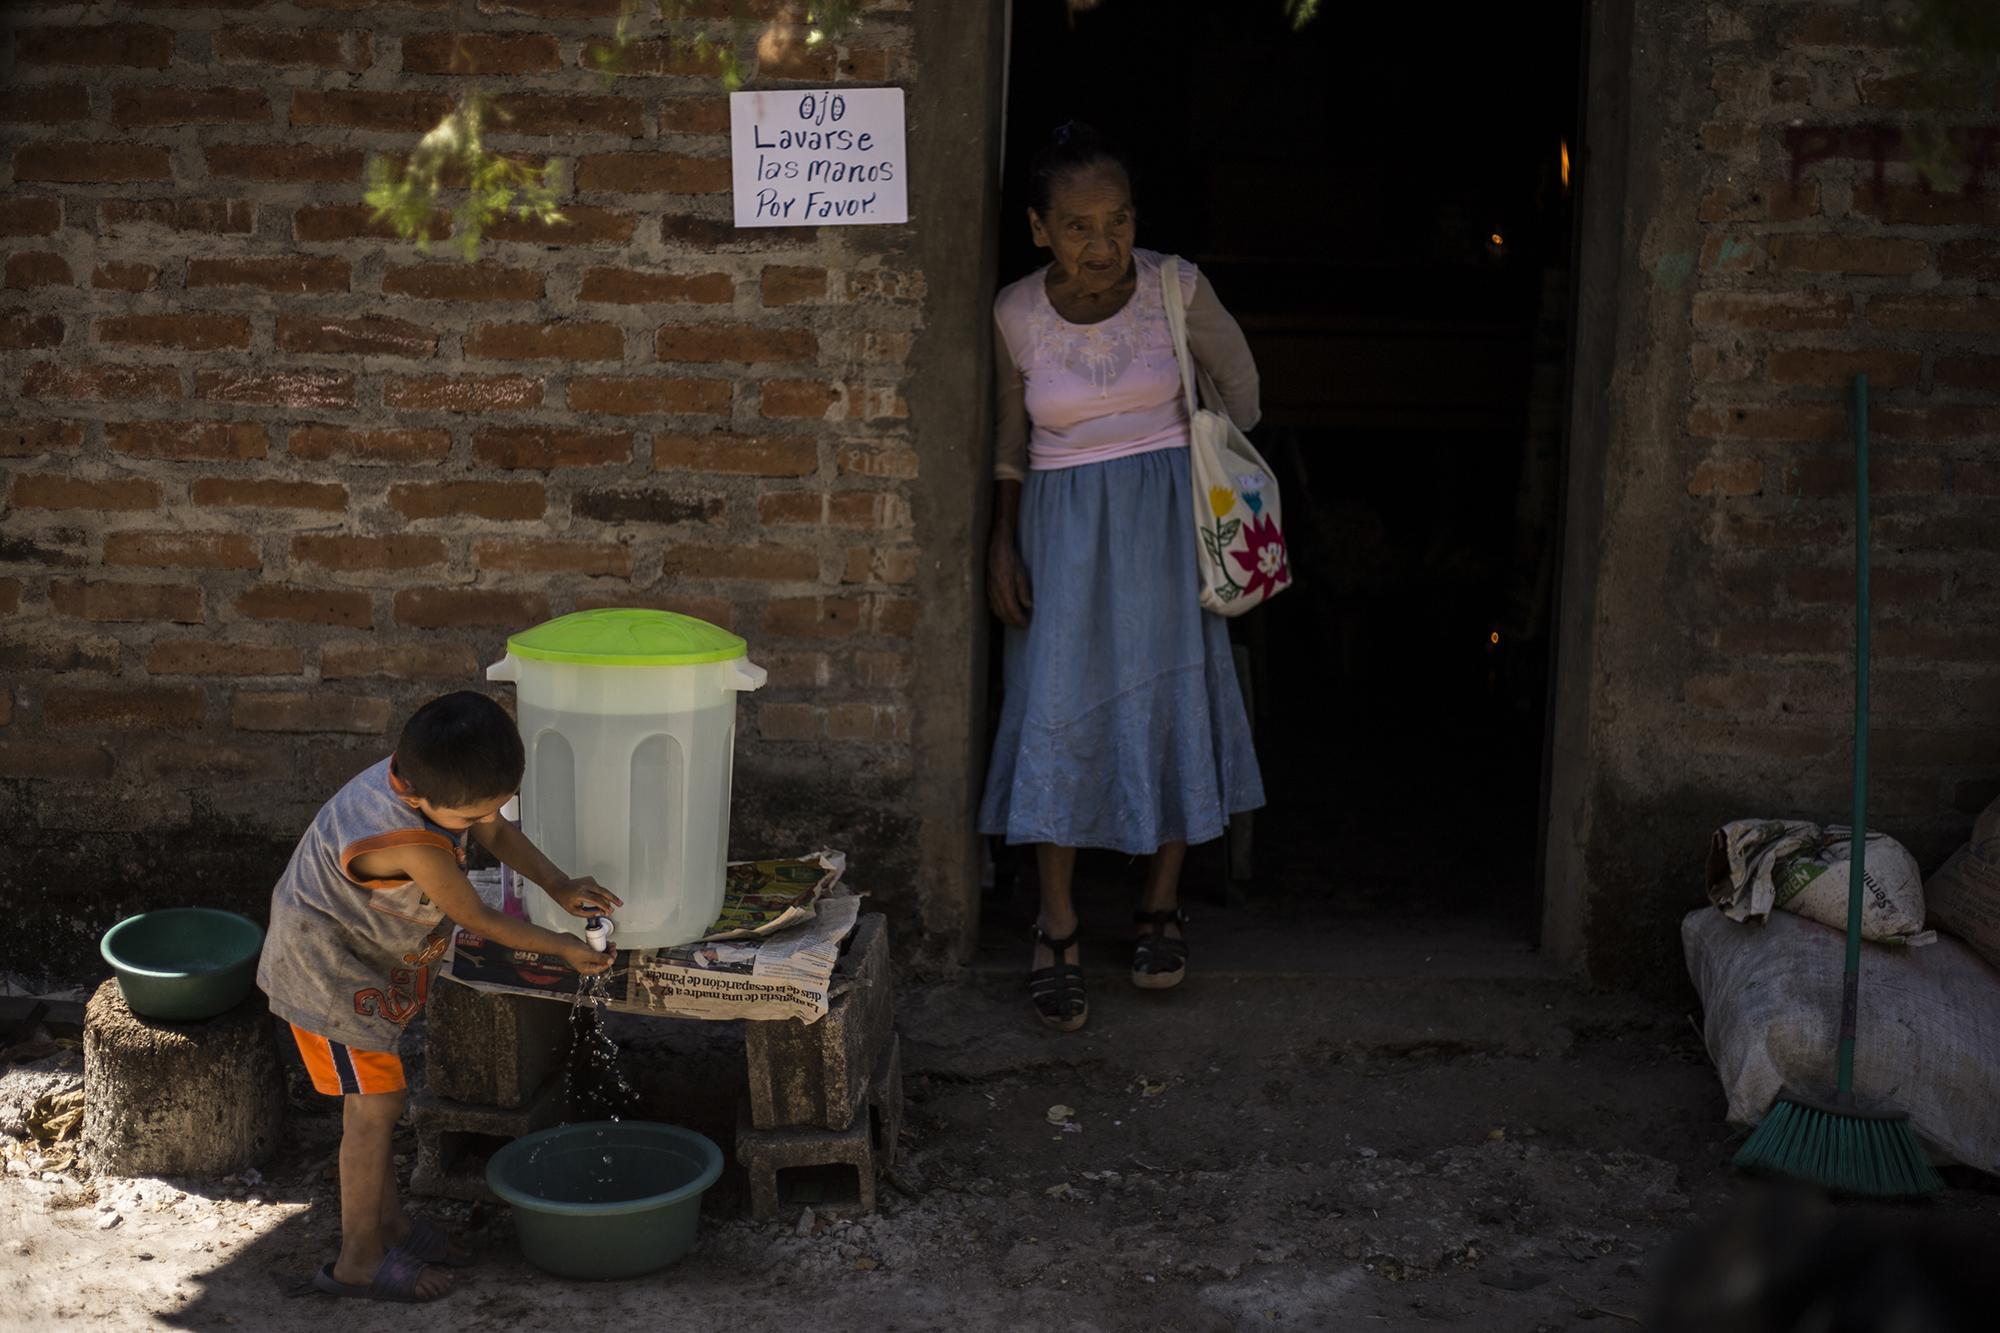 Two-year-old Auner Amaya washes his hands. In the doorway, Don Ángel's 87-year-old sister, María Santos. When news spread of Ángel's death, police arrived at the house to explain hygiene protocols for funerals in response to the COVID-19 emergency. Photo for El Faro: Víctor Peña.